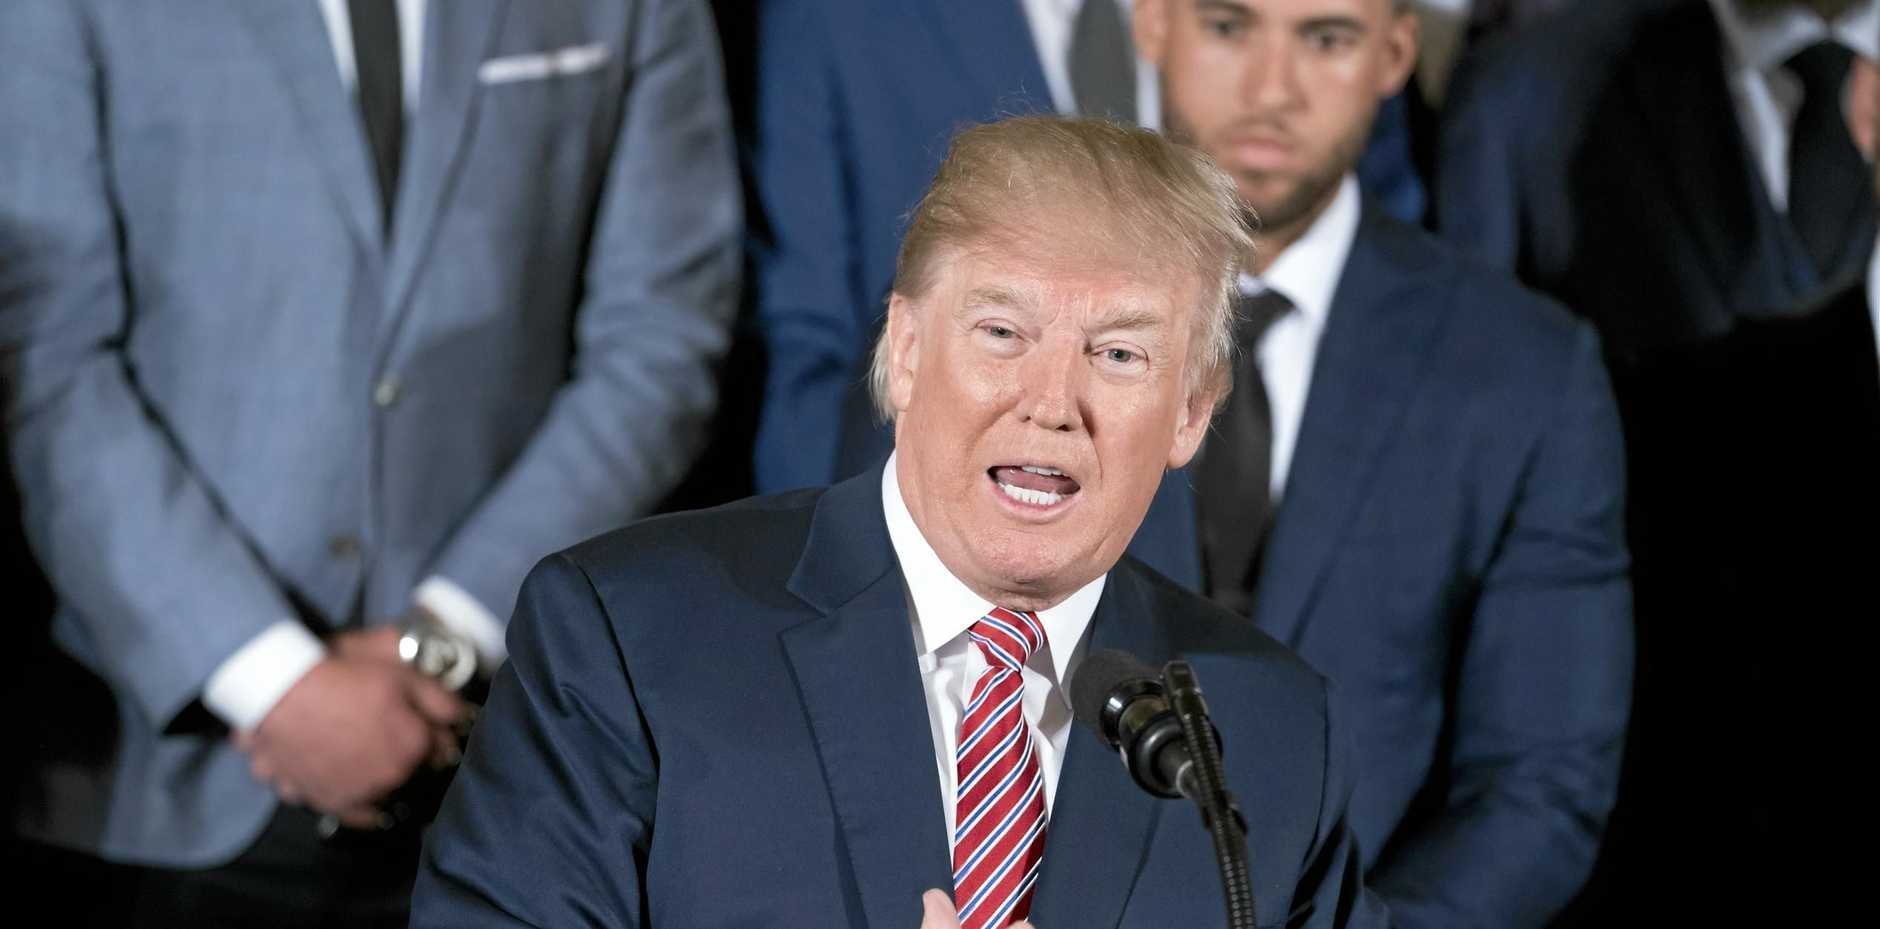 President Donald Trump's announcement of steel and aluminium tariffs on imports risks a full-blown trade war between the US and its major trading partners - China and the EU.